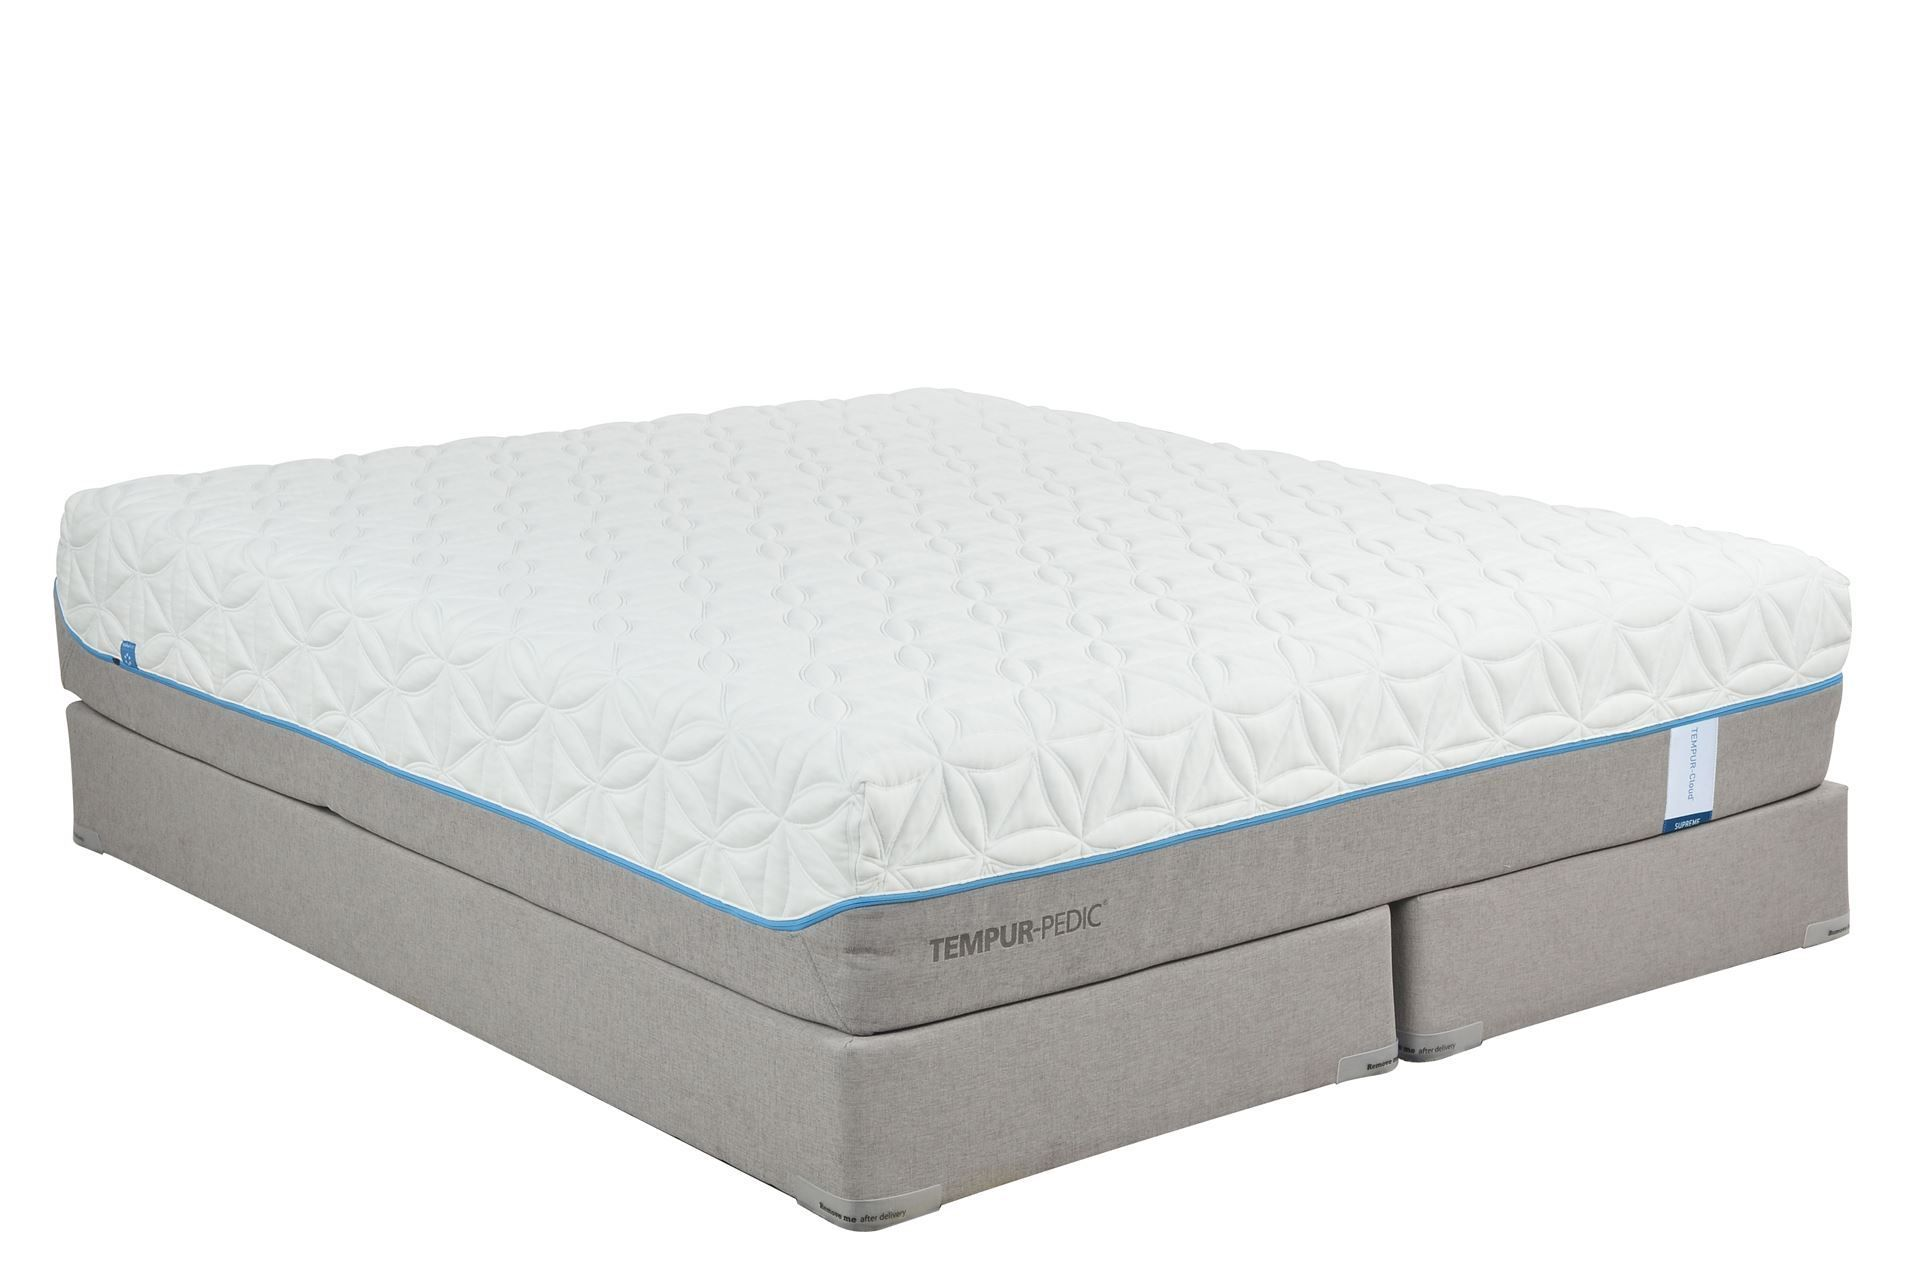 storage frame size image bed eastern of mattress amazon king